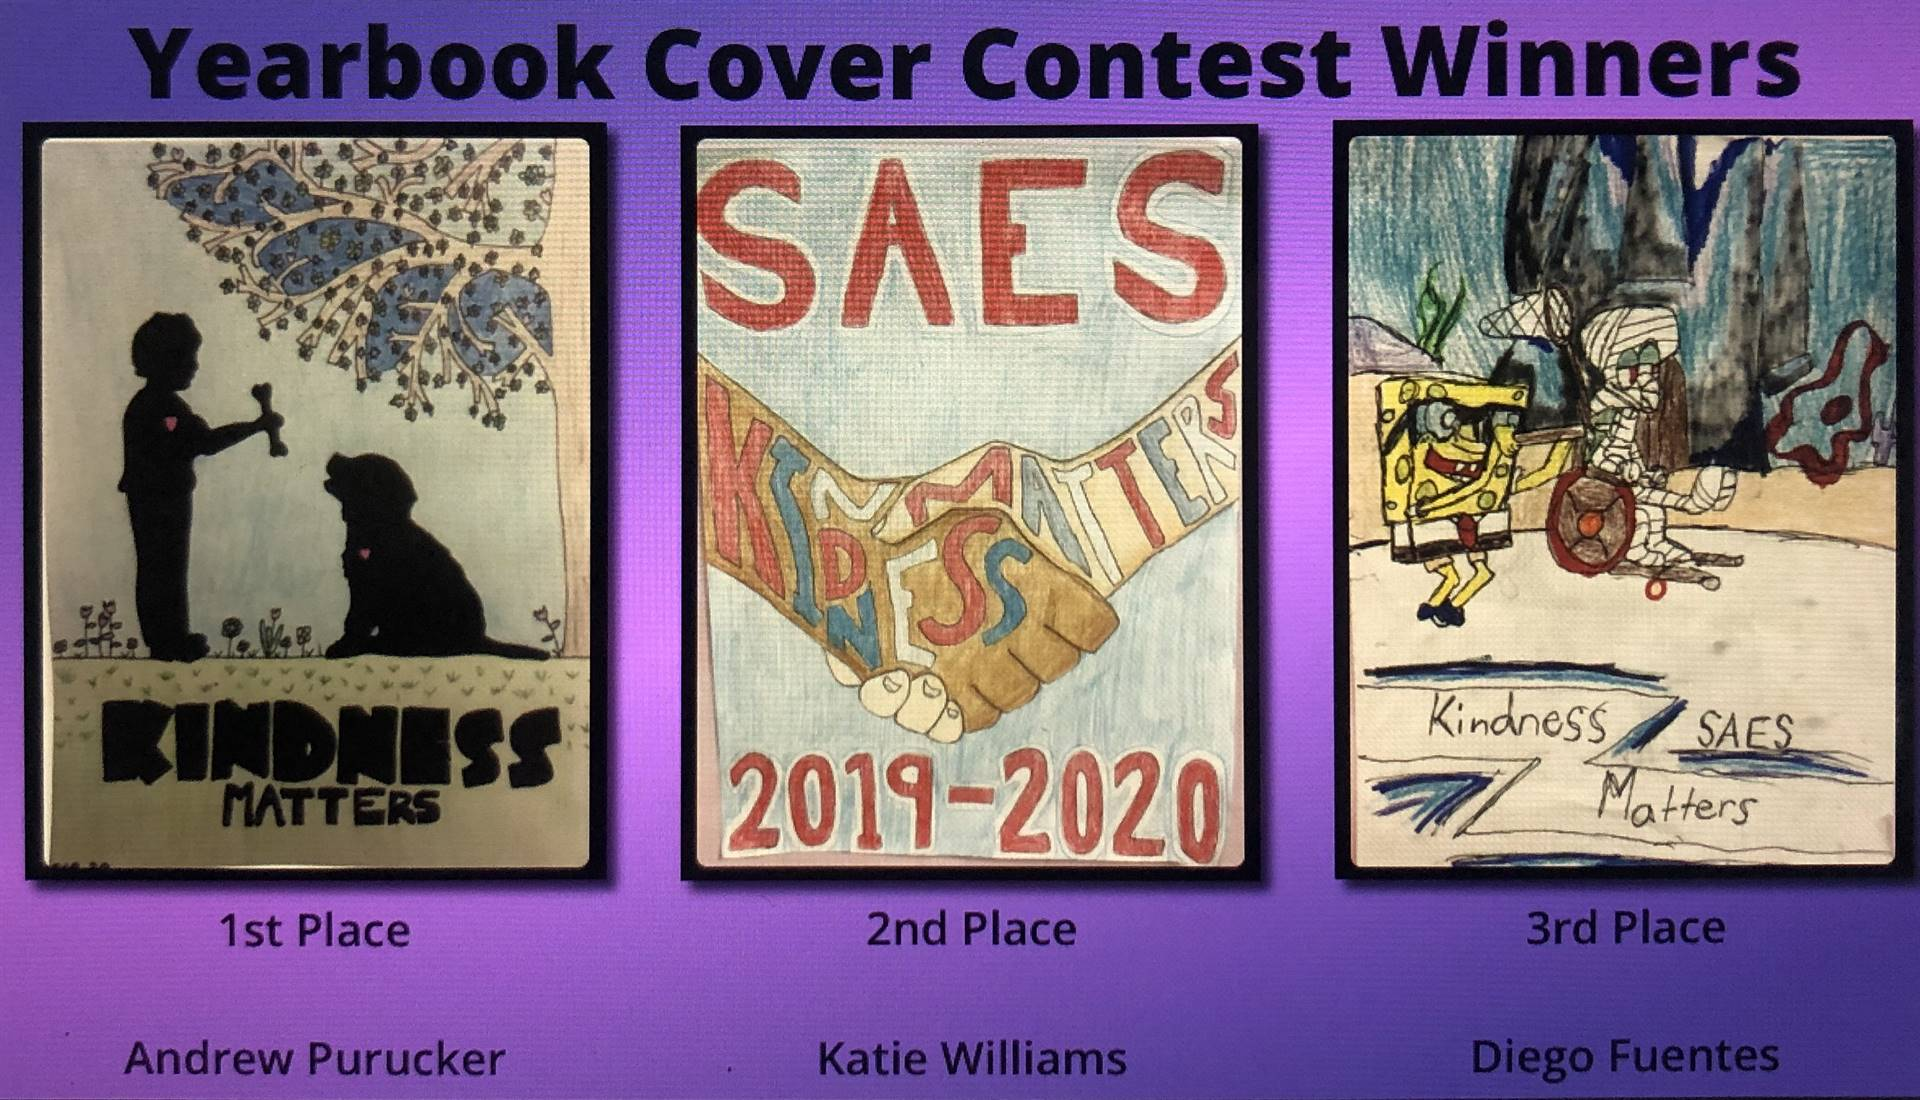 Yearbook Cover Contest Winners